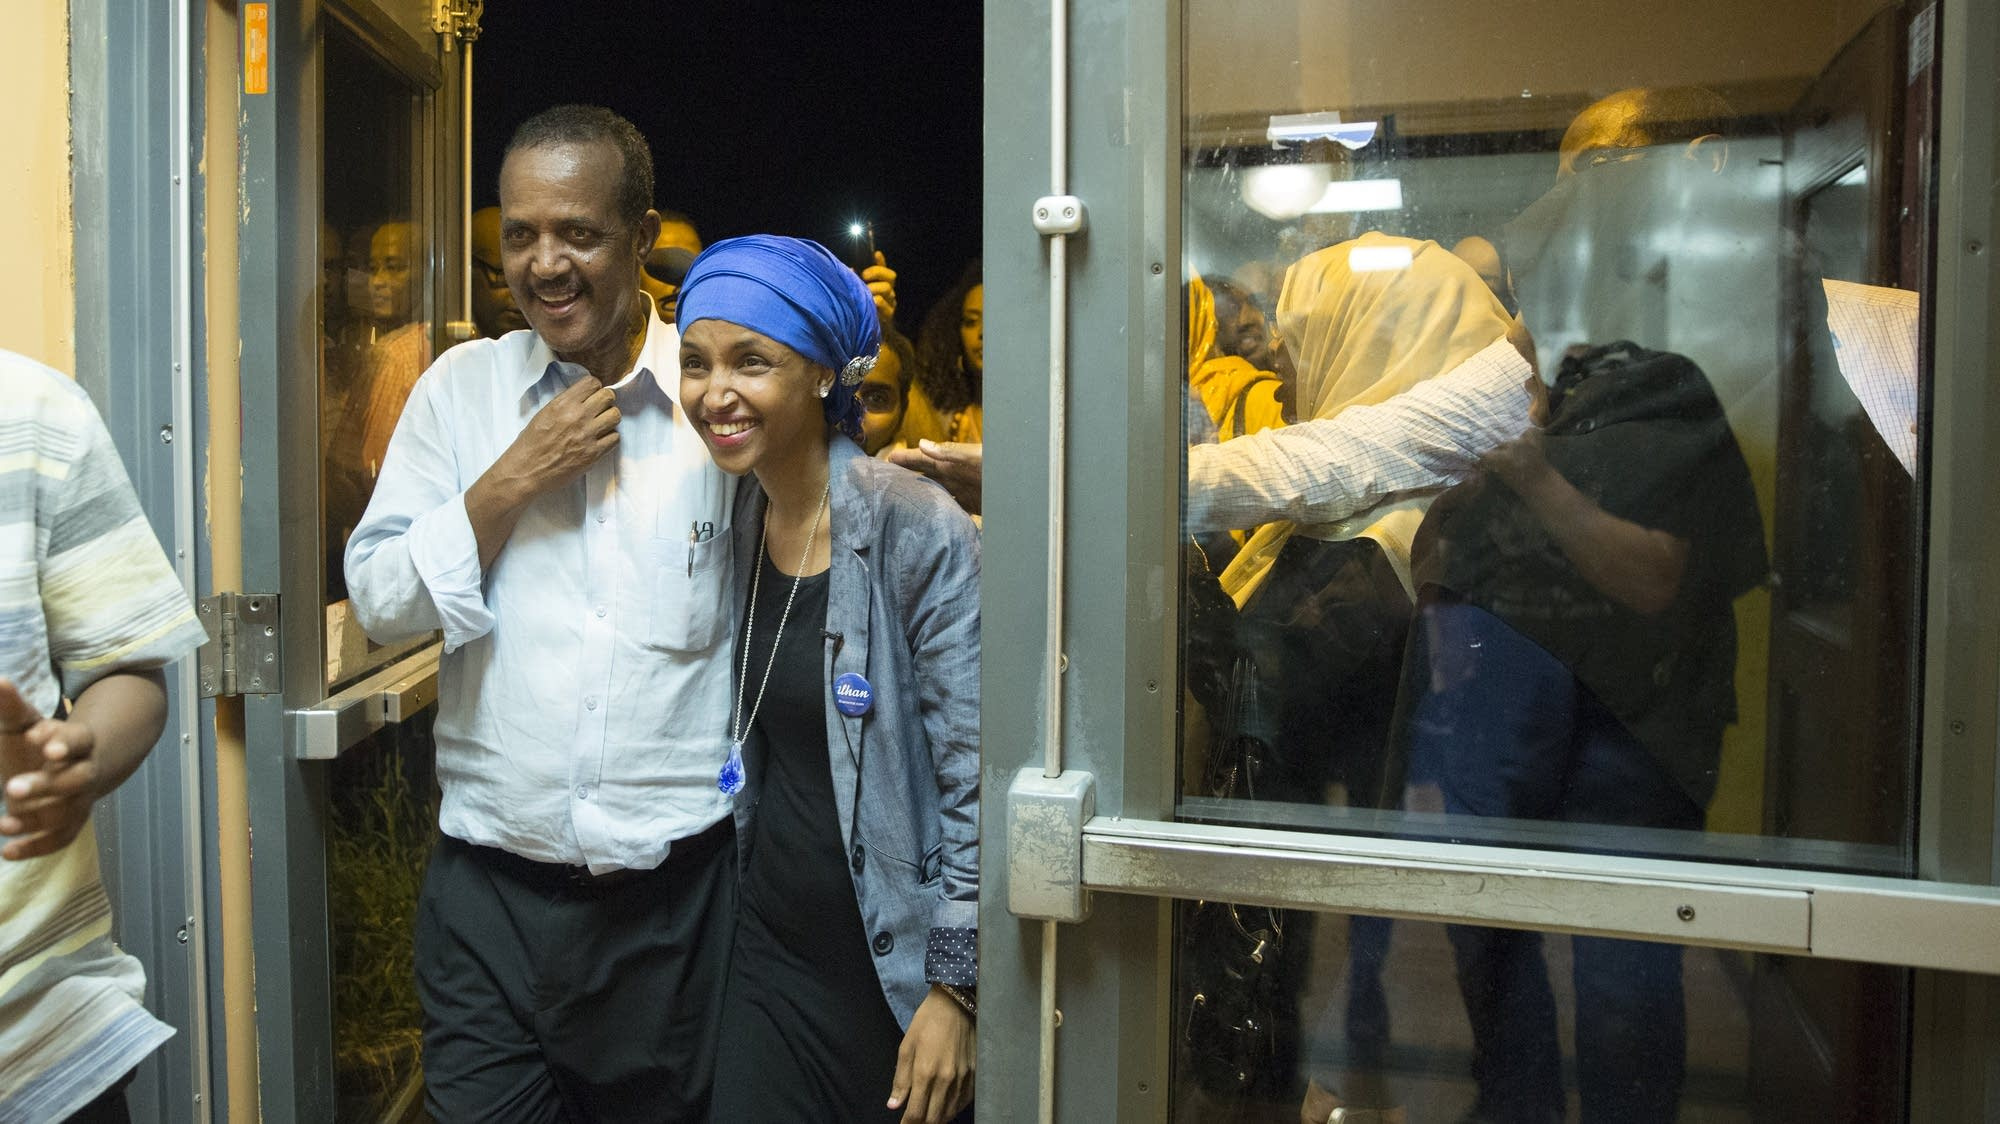 Photos: Ilhan Omar and supporters celebrate primary ...Ilhan Omar Primary